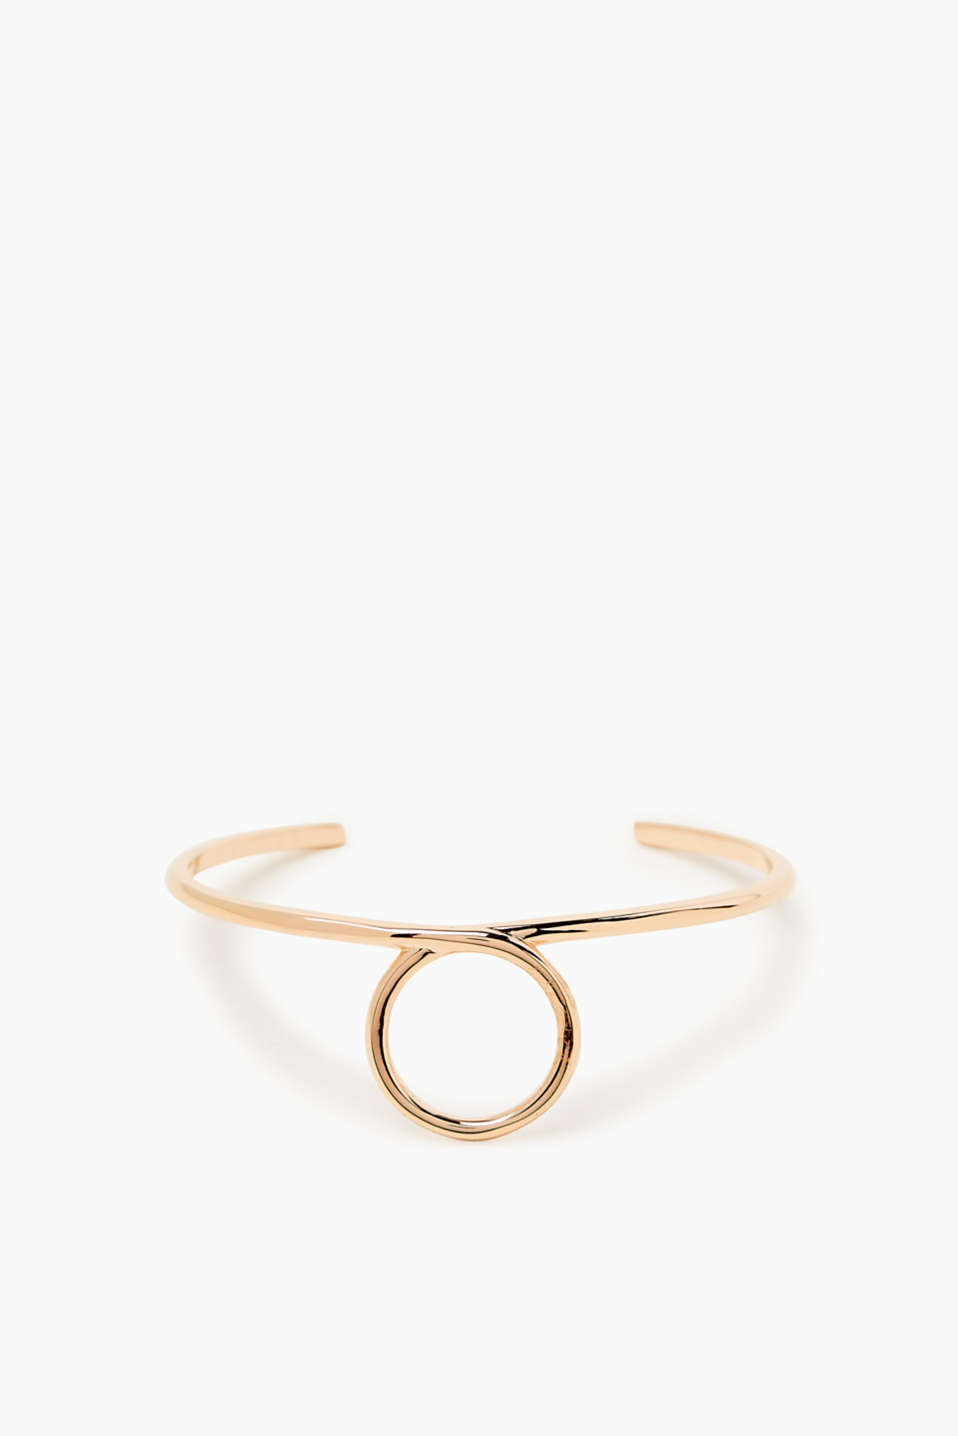 Open bangle made of stainless steel in a minimalist design with high-quality rose gold